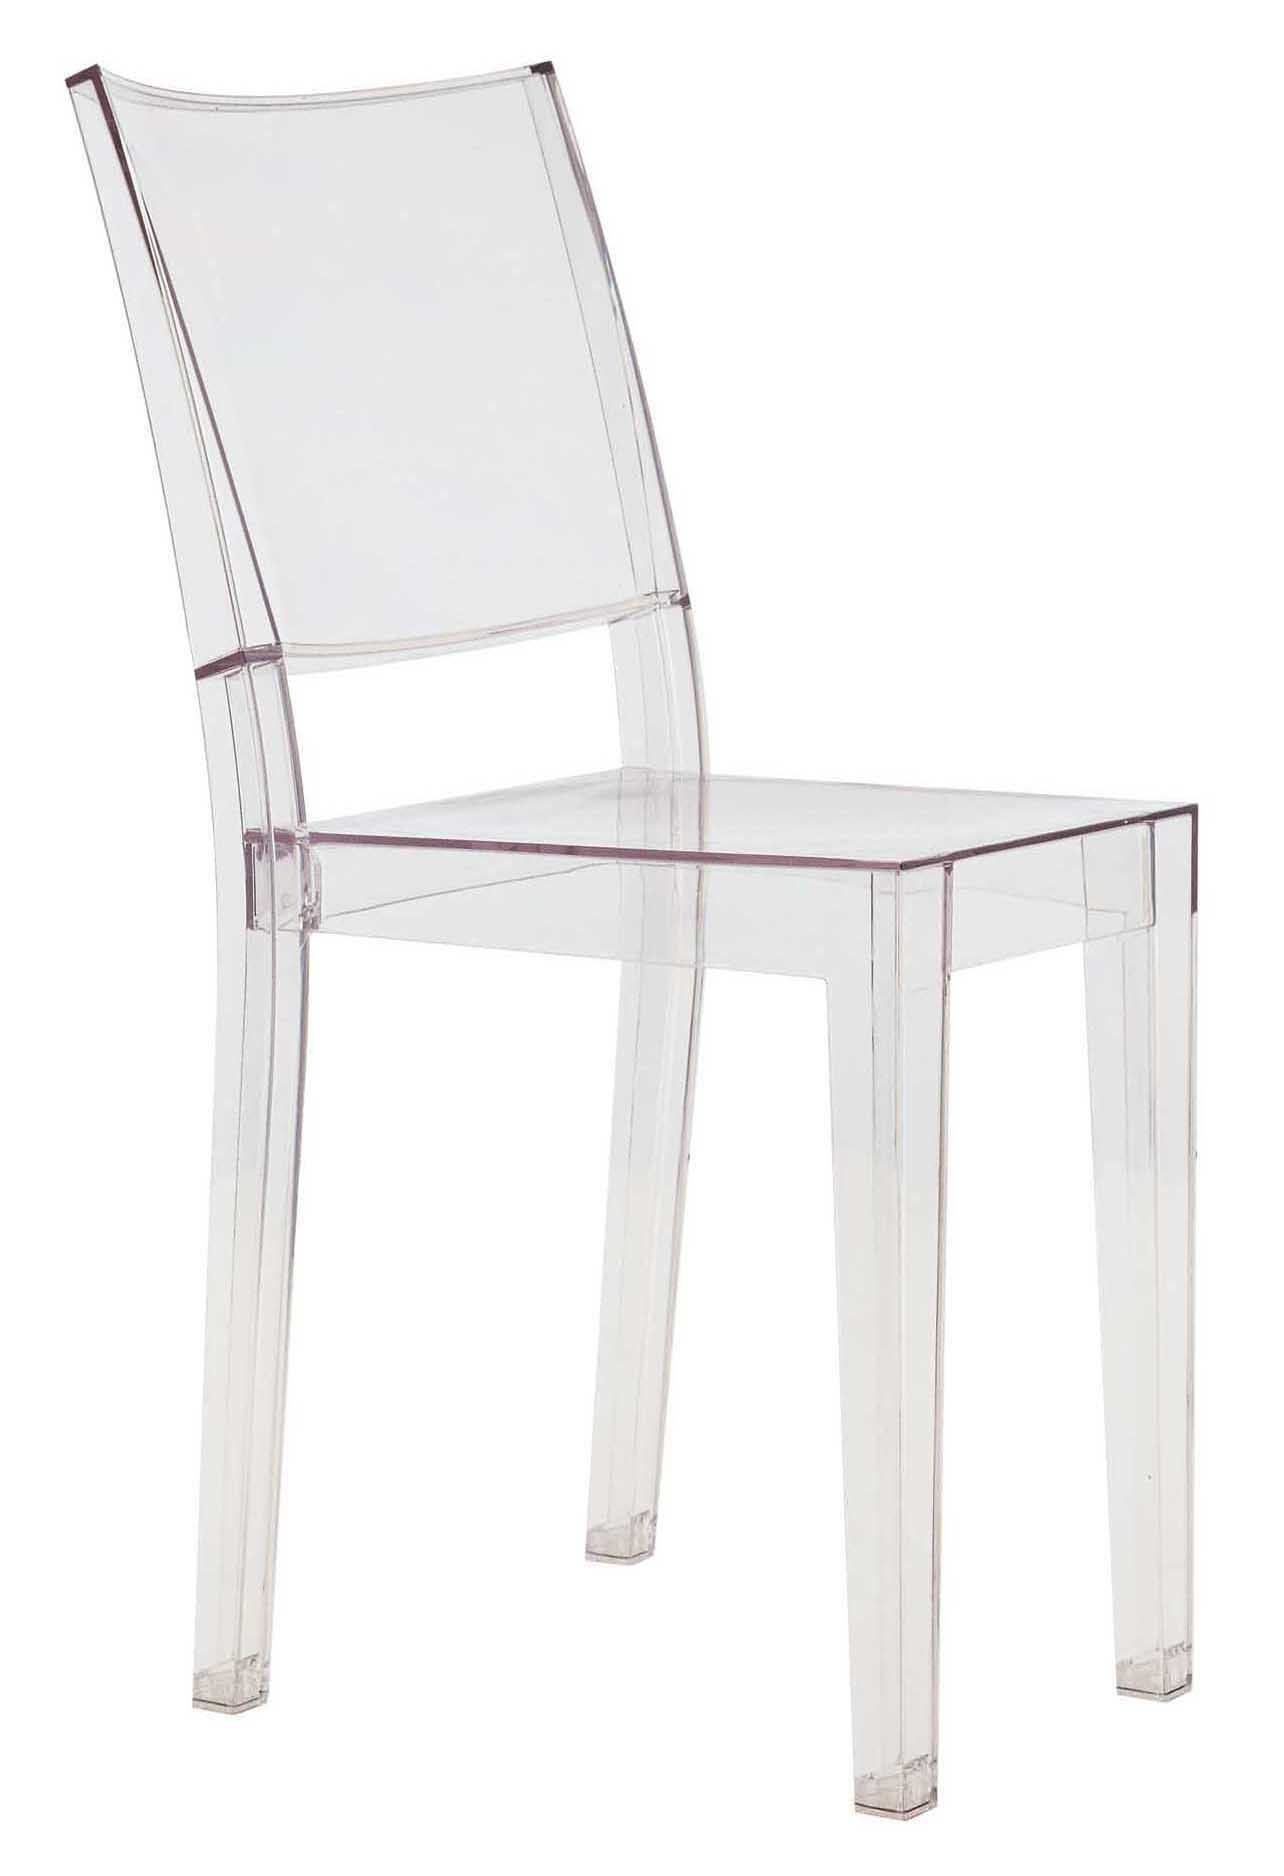 Plastic Clear Chair La Marie Stacking Chair Transparent Polycarbonate By Kartell